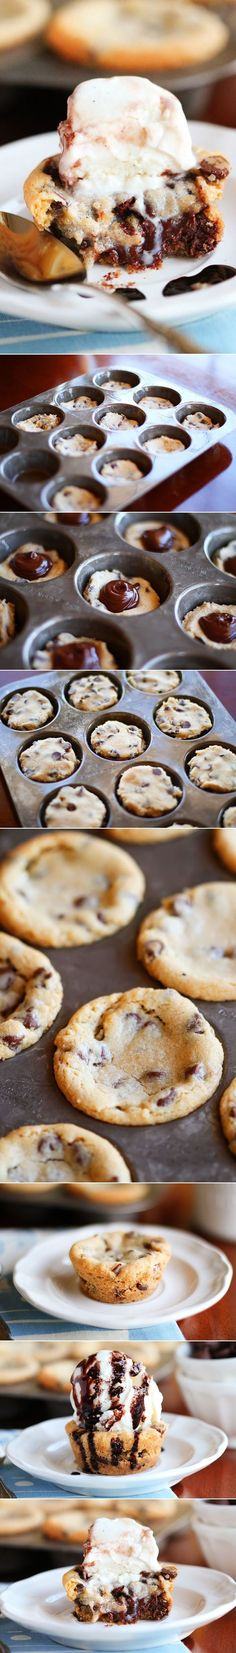 Chocolate filled cookies! YUM!!!!!!